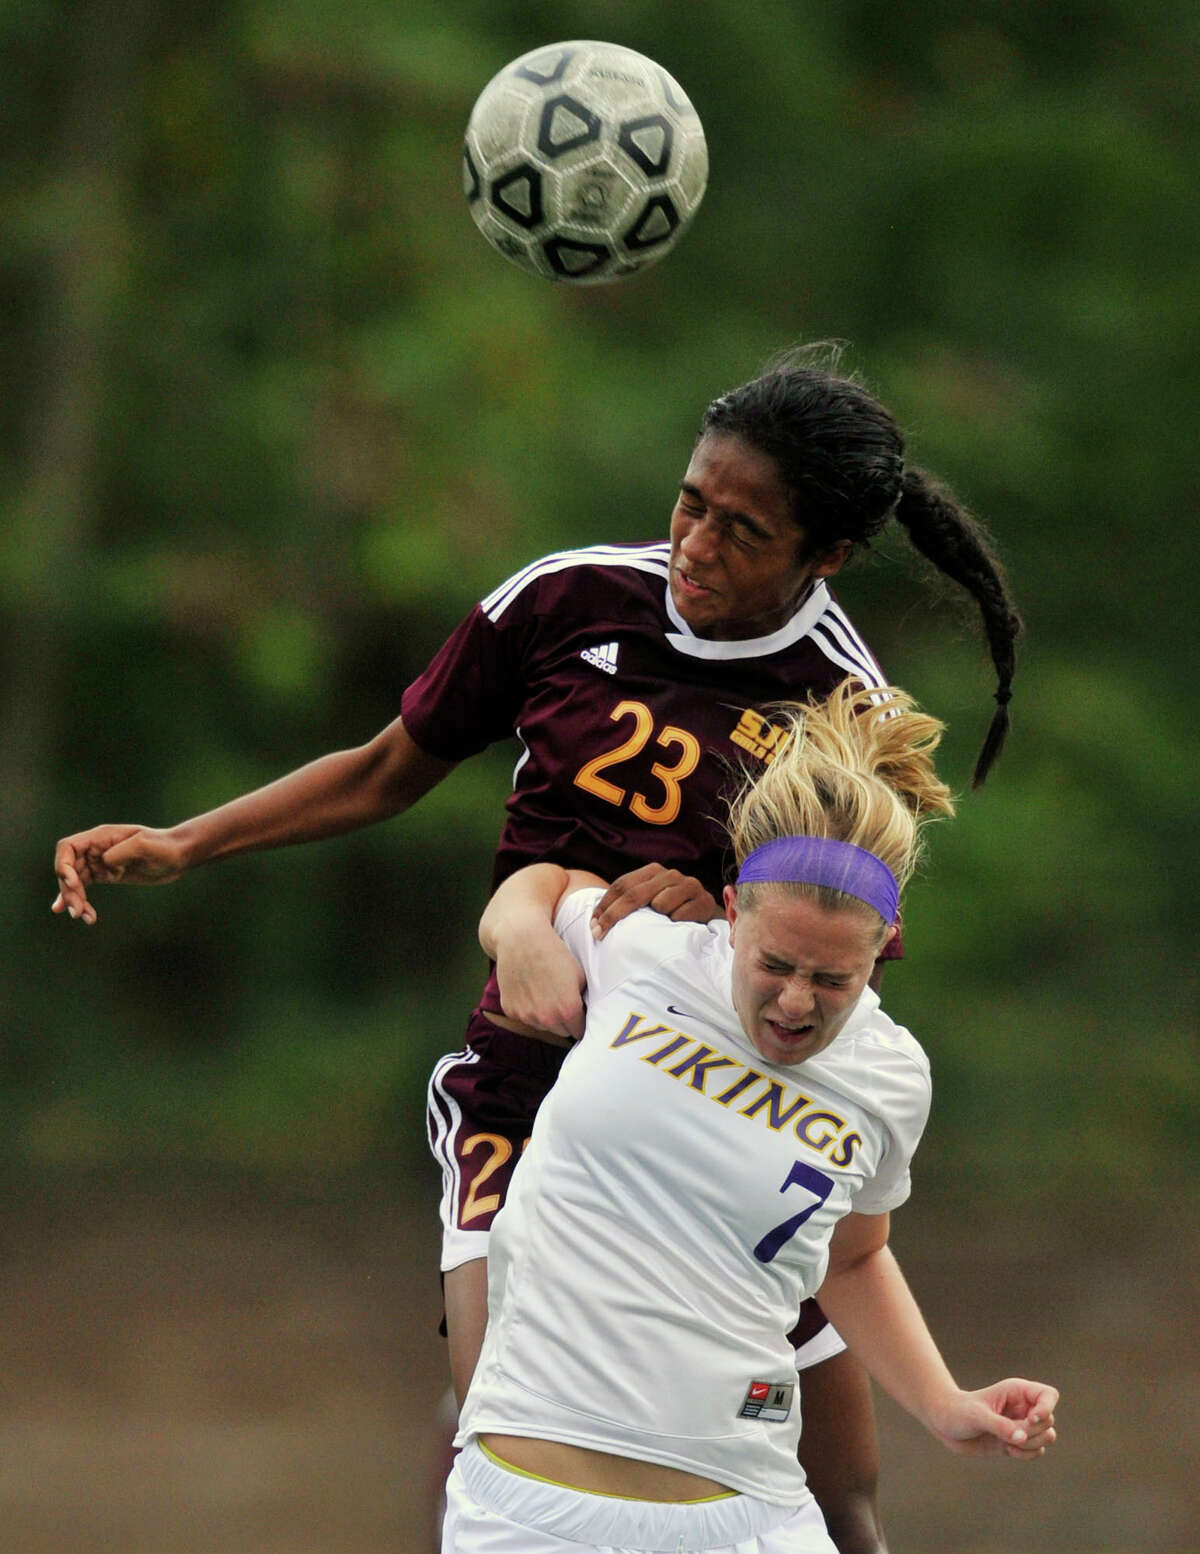 St. Joseph's Leah Lewis leaps over Westhill's Rachel Benz to get a head on the ball during their game at Westhill High School in Stamford, Conn., on Wednesday, Oct. 16, 2013. St. Joseph won, 4-1.